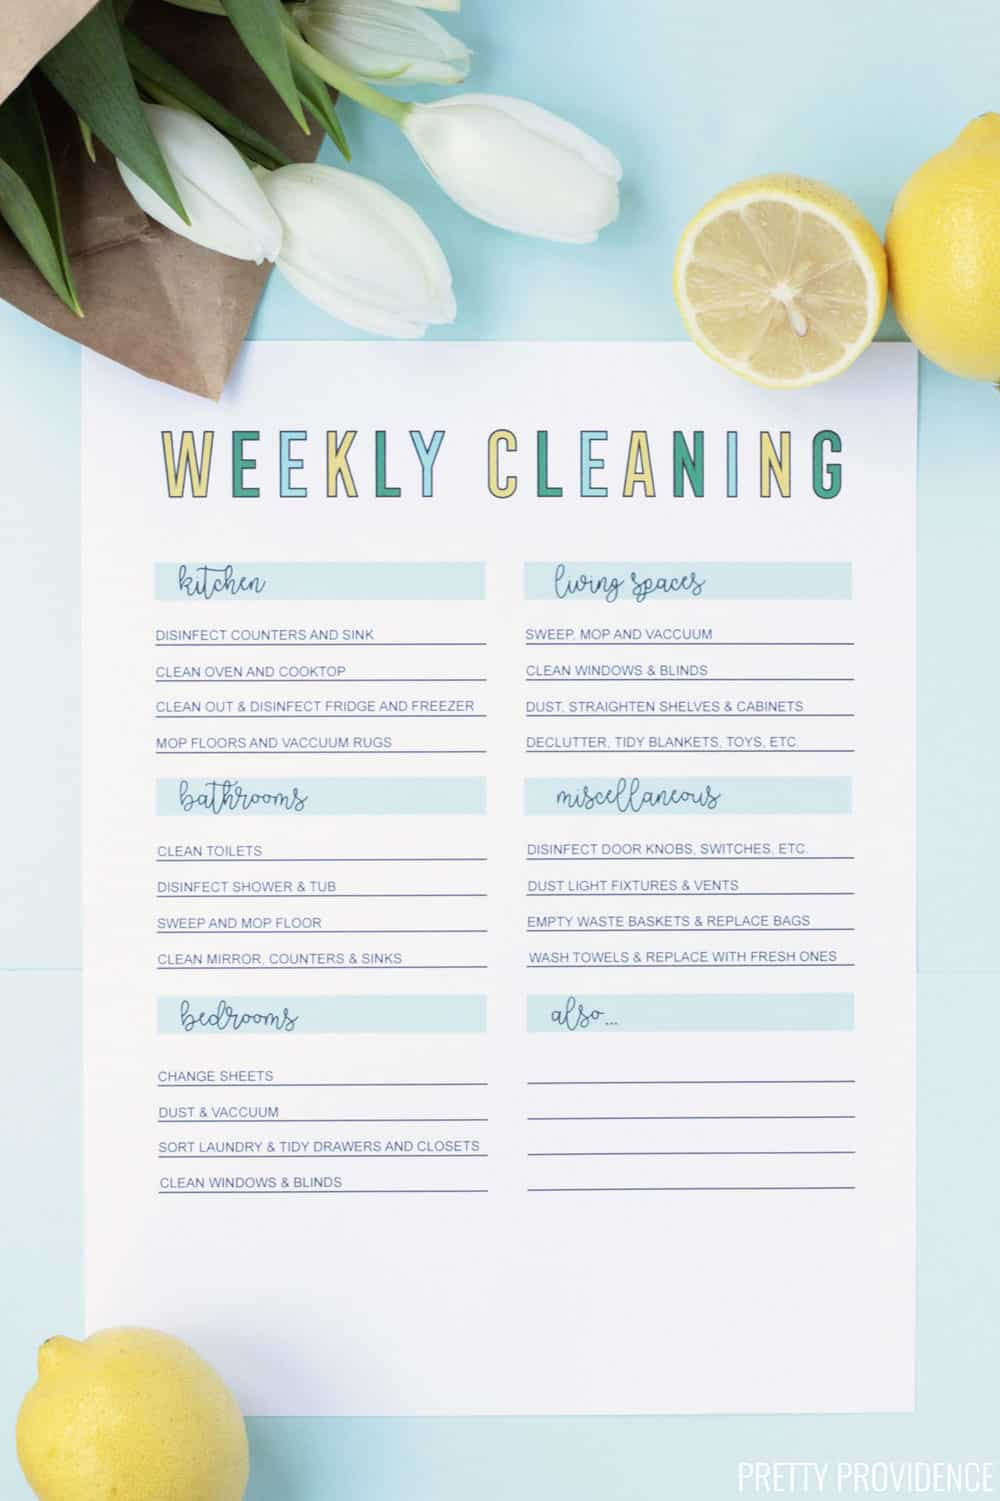 Weekly cleaning routine checklist, printed on white paper with lemon slices and tulips on the side!